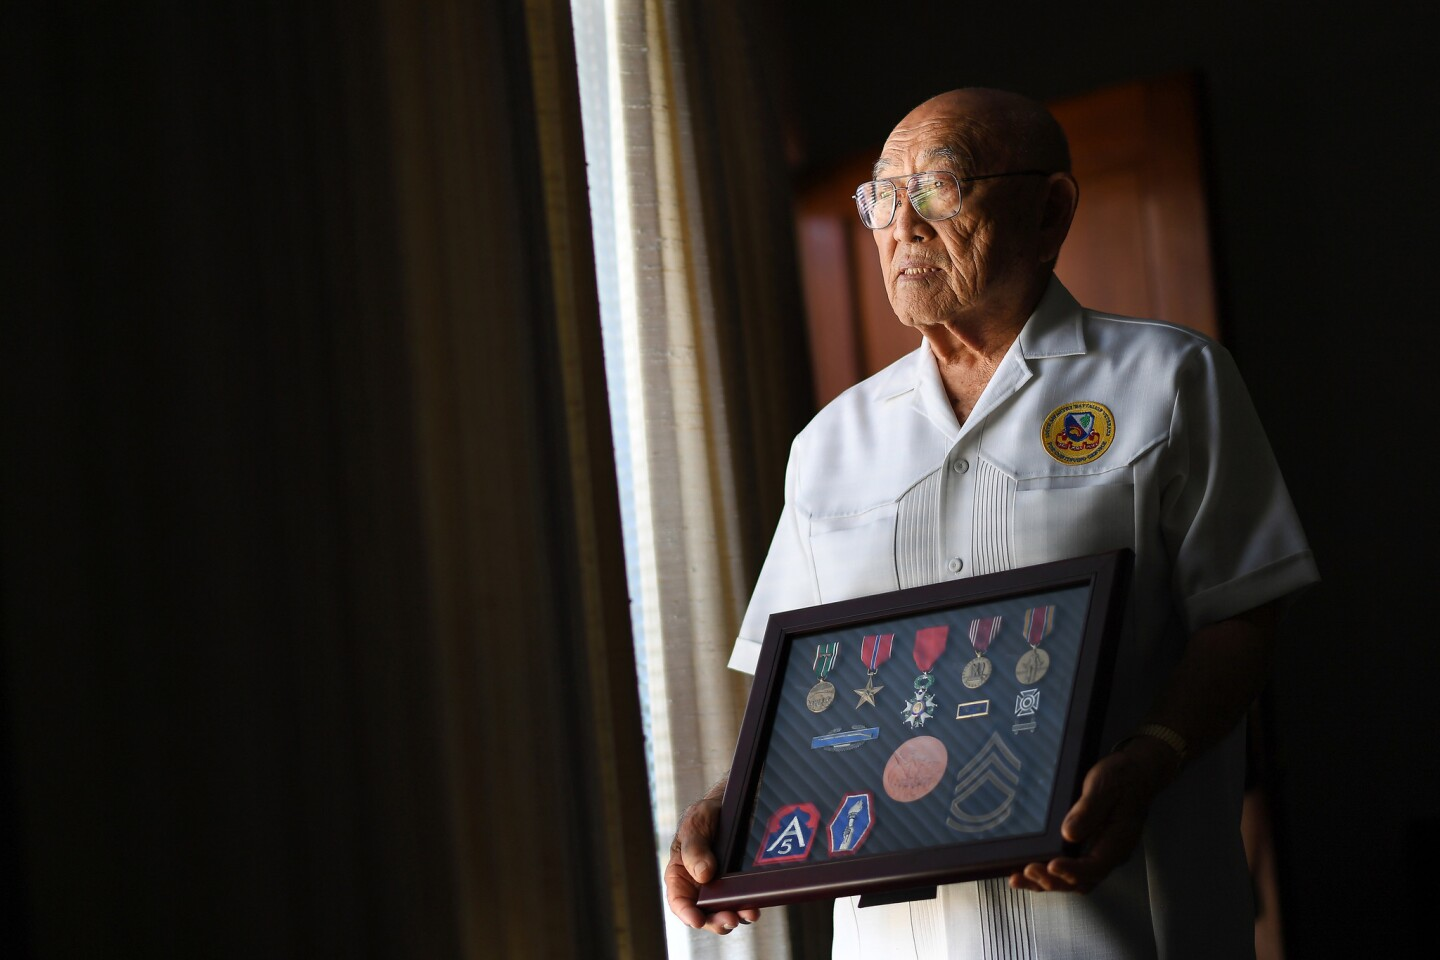 Tokuji Yoshihashi, 94, is photographed with his collection of medals at home in San Gabriel. Exactly 75 years ago Sunday, President Franklin D. Roosevelt signed Executive Order 9066, which paved the way for the incarceration of Yoshihashi and 120,000 other Japanese Americans